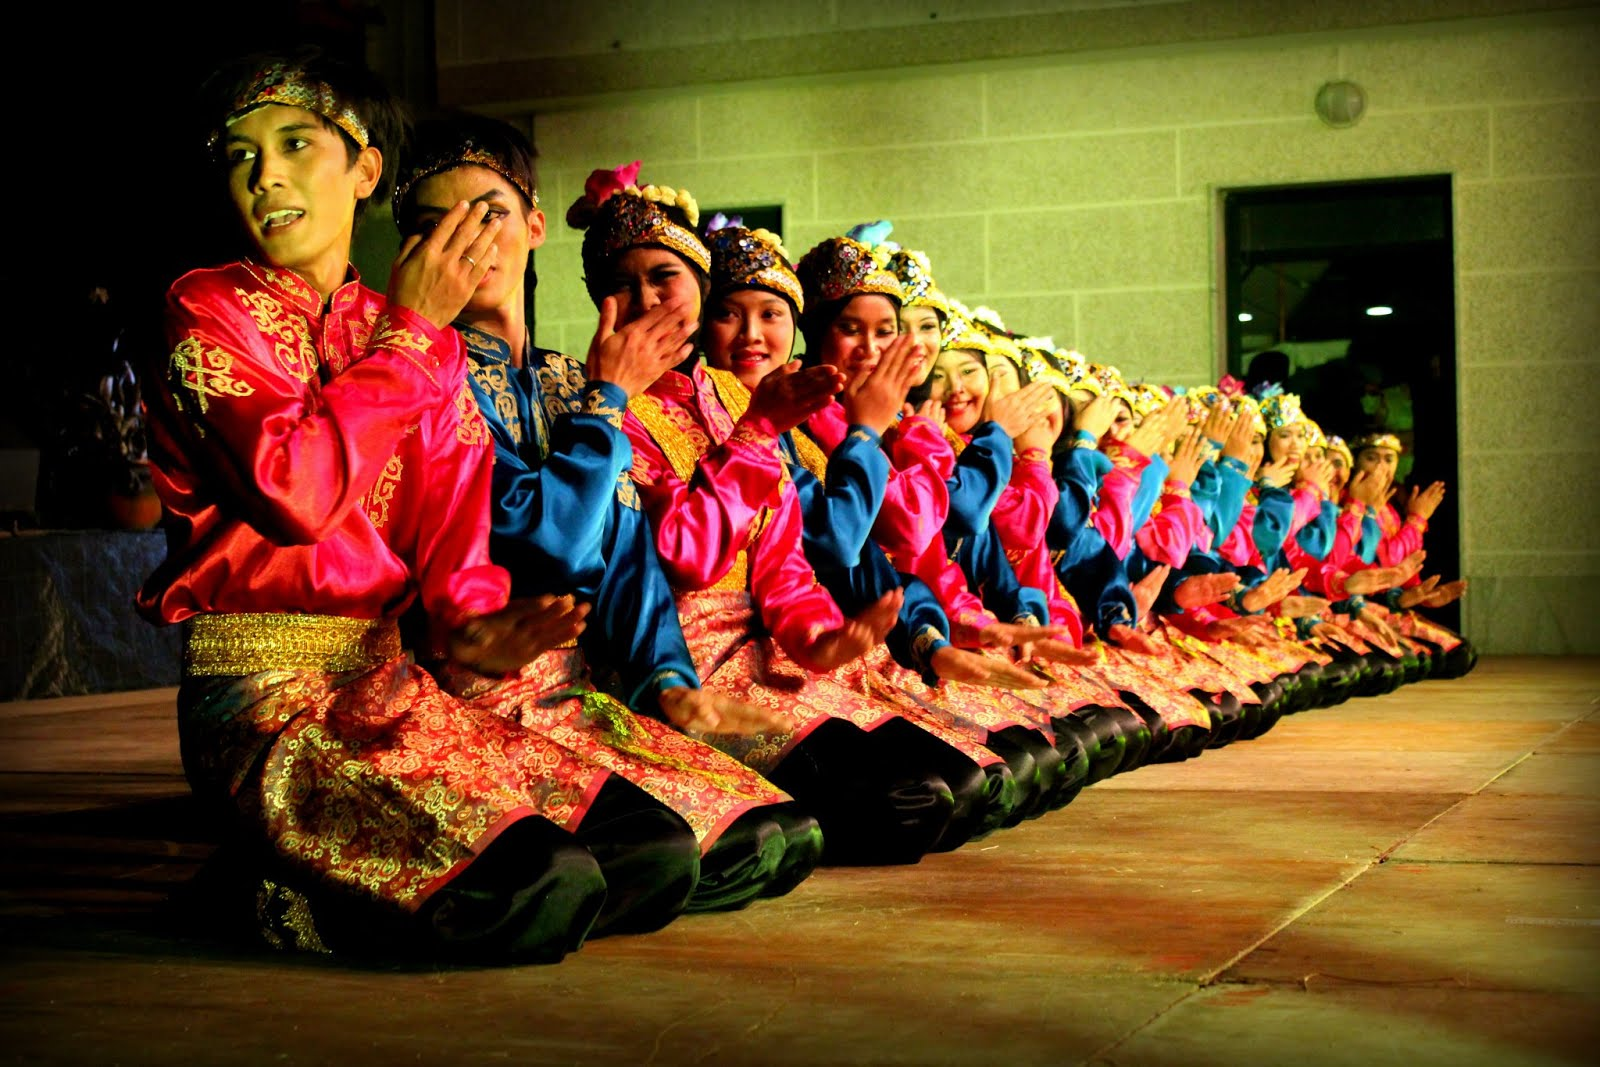 Catatan Harian Ipad: Saman Dance, Indonesia Culture has been Known in The Whole World